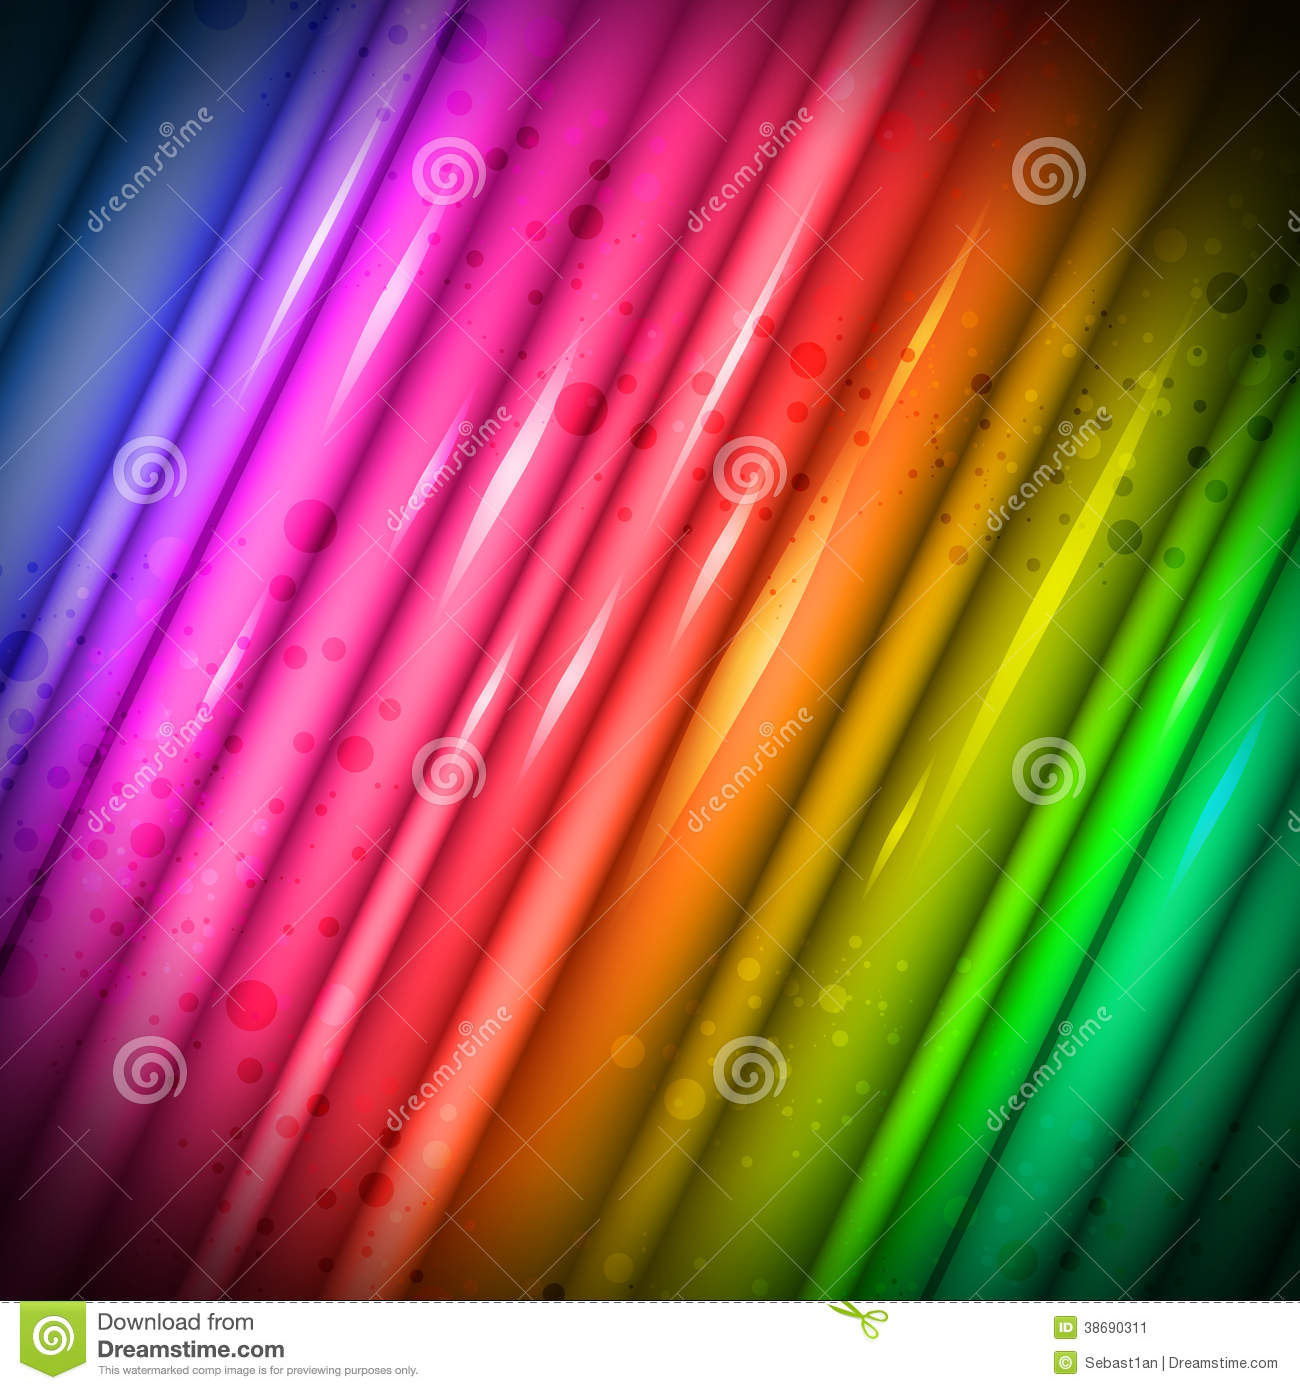 Abstract background illustration glossy rainbow color HD Wide Wallpaper for Widescreen